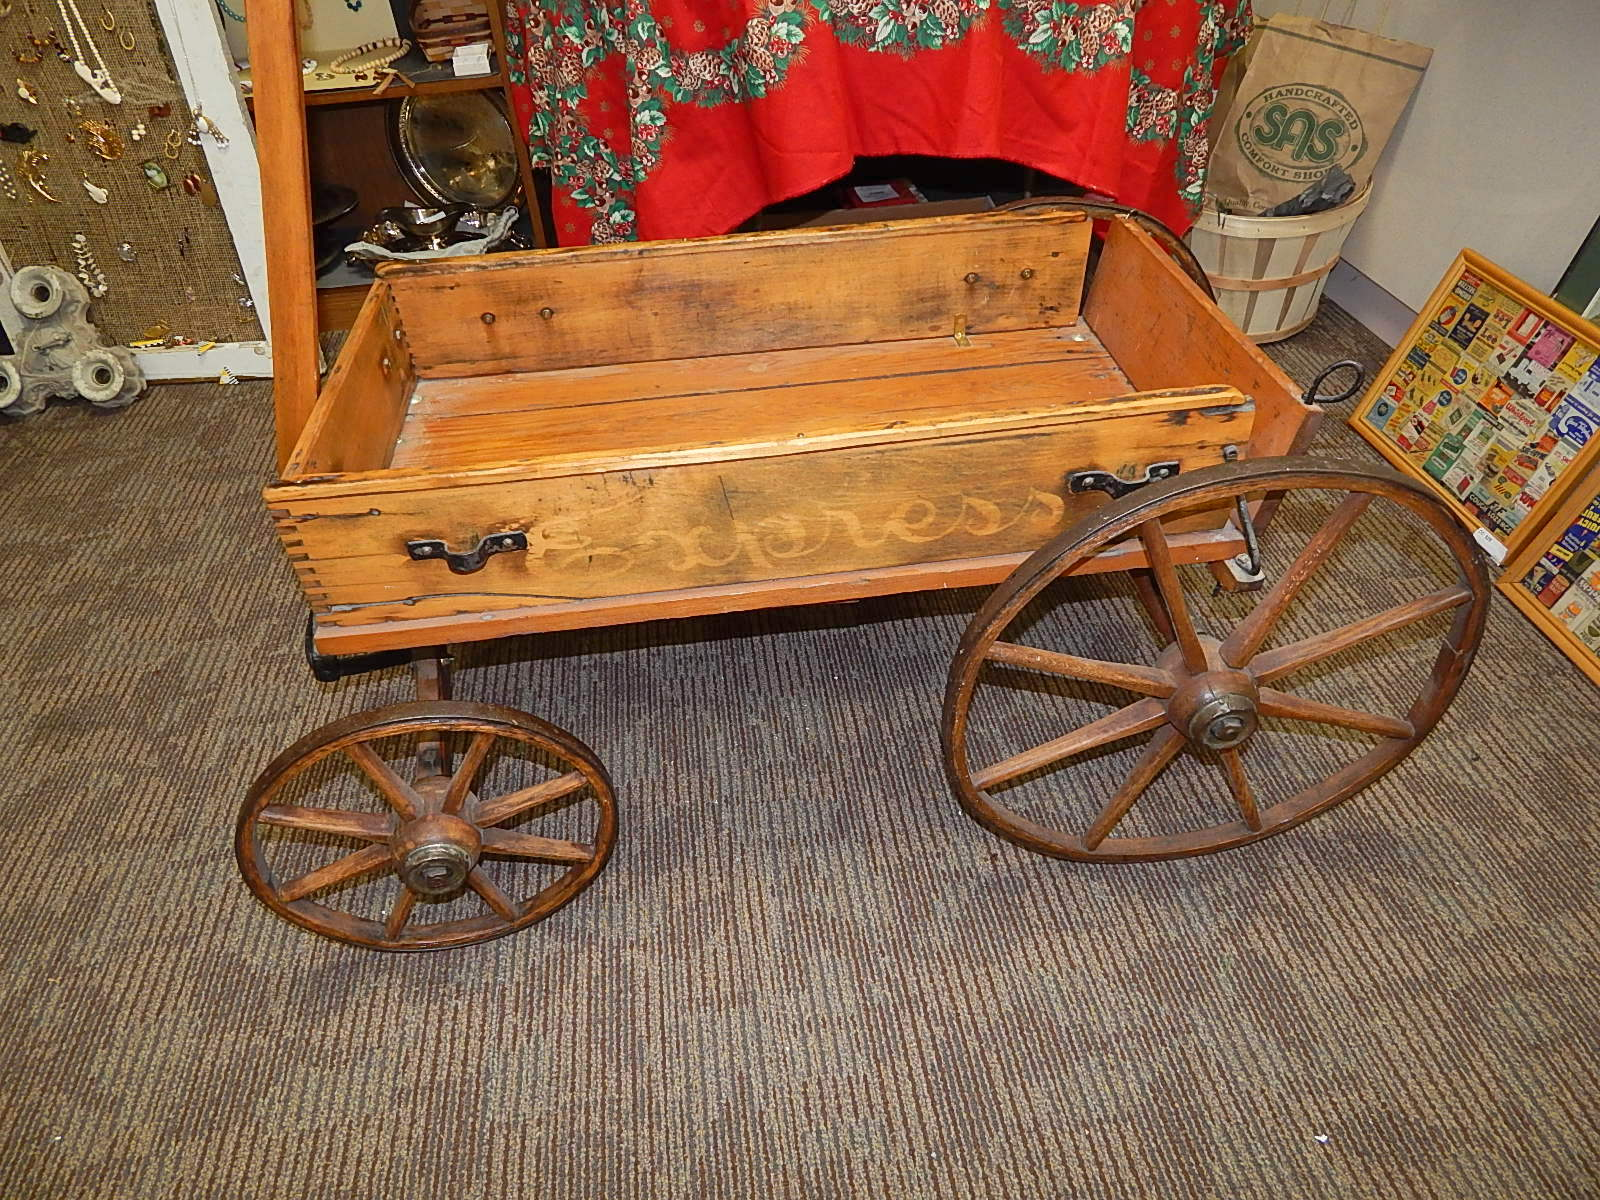 Antique Express Childs Toy Wood Wagon Curiosity Consignment